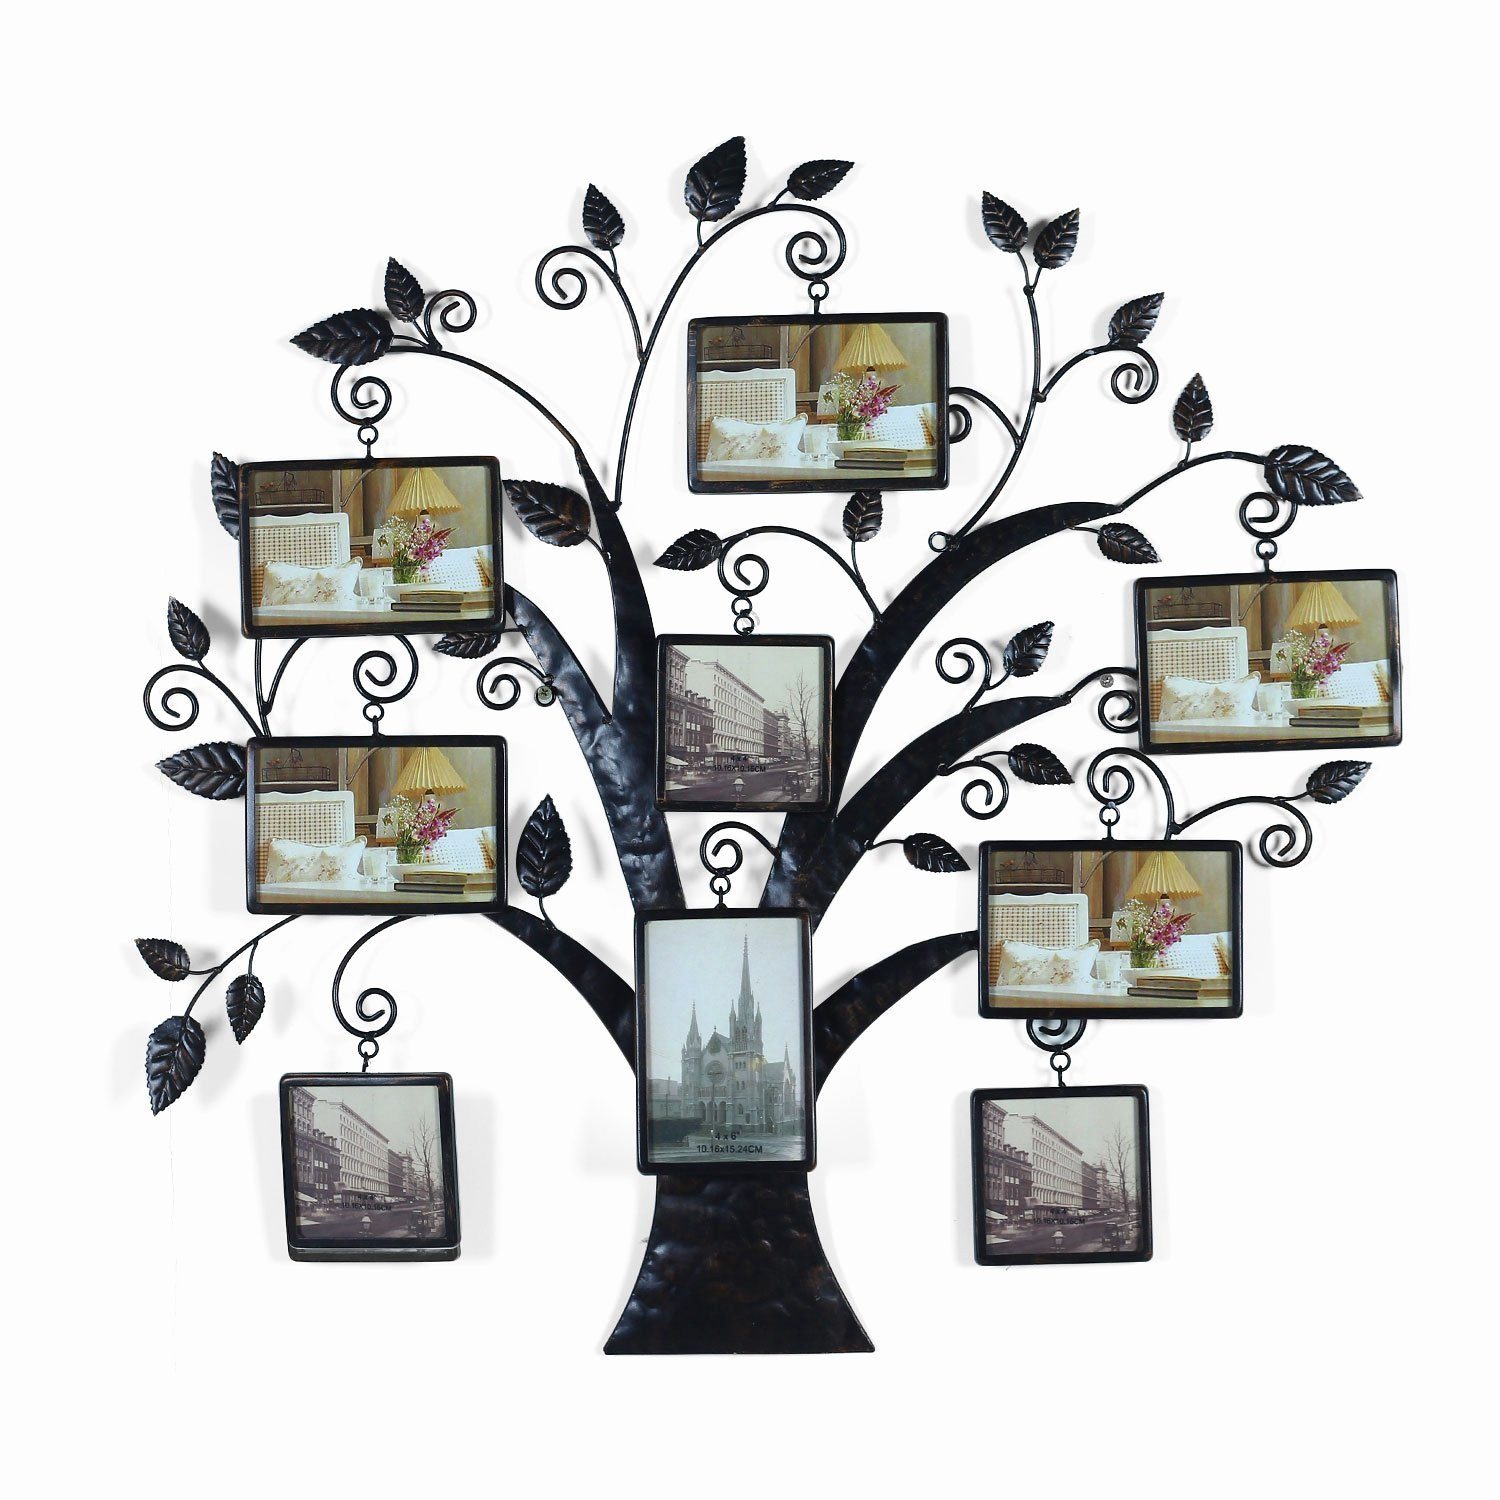 Family Tree Photo Collage Awesome Adeco Brown Black Decorative 9 Opening Collage Bronze Bronze Iron Metal Wall Haning Family Tree